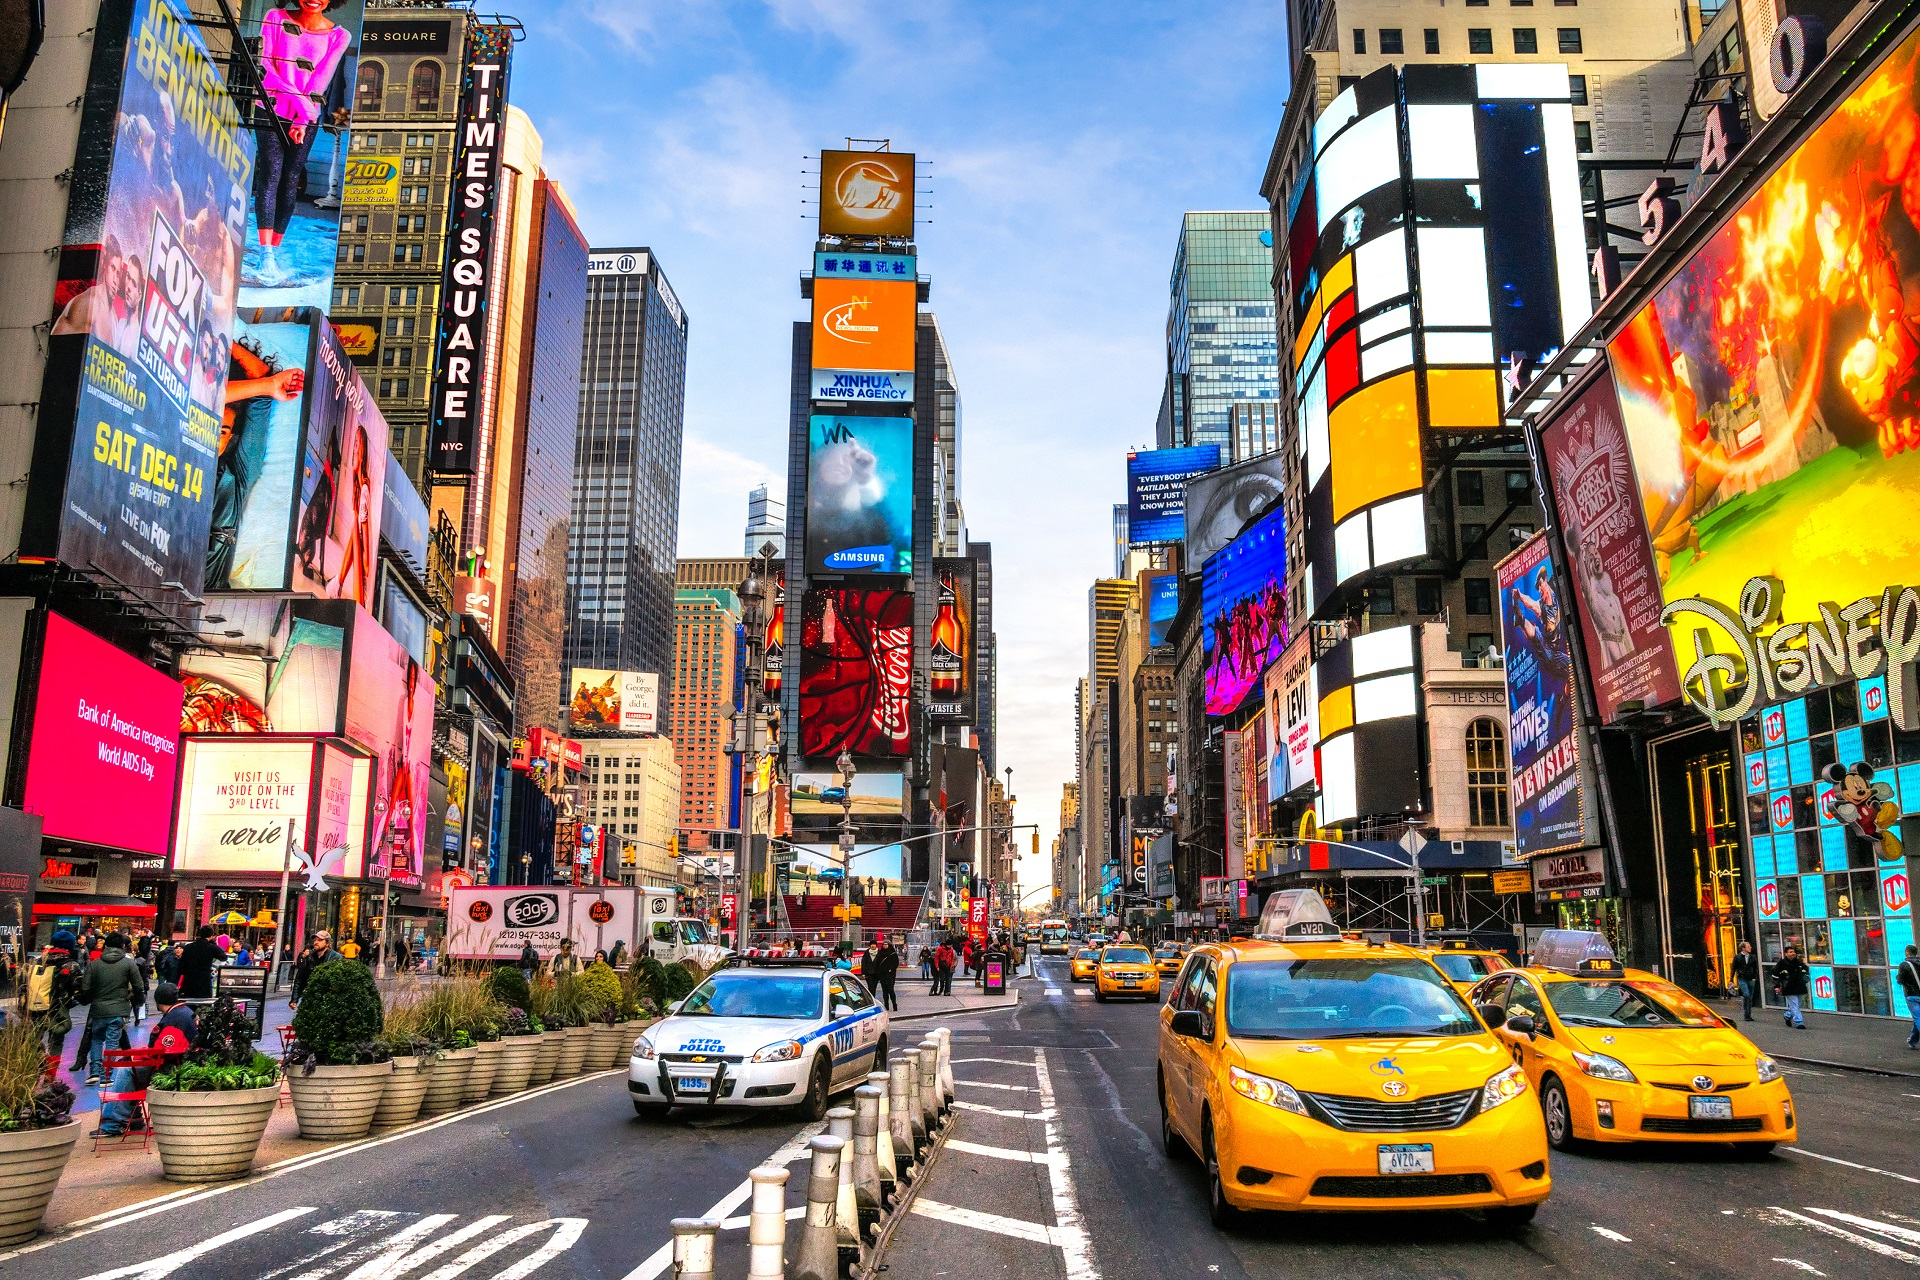 Alle new york tipps auf einen blick for Things to do in nyc evening